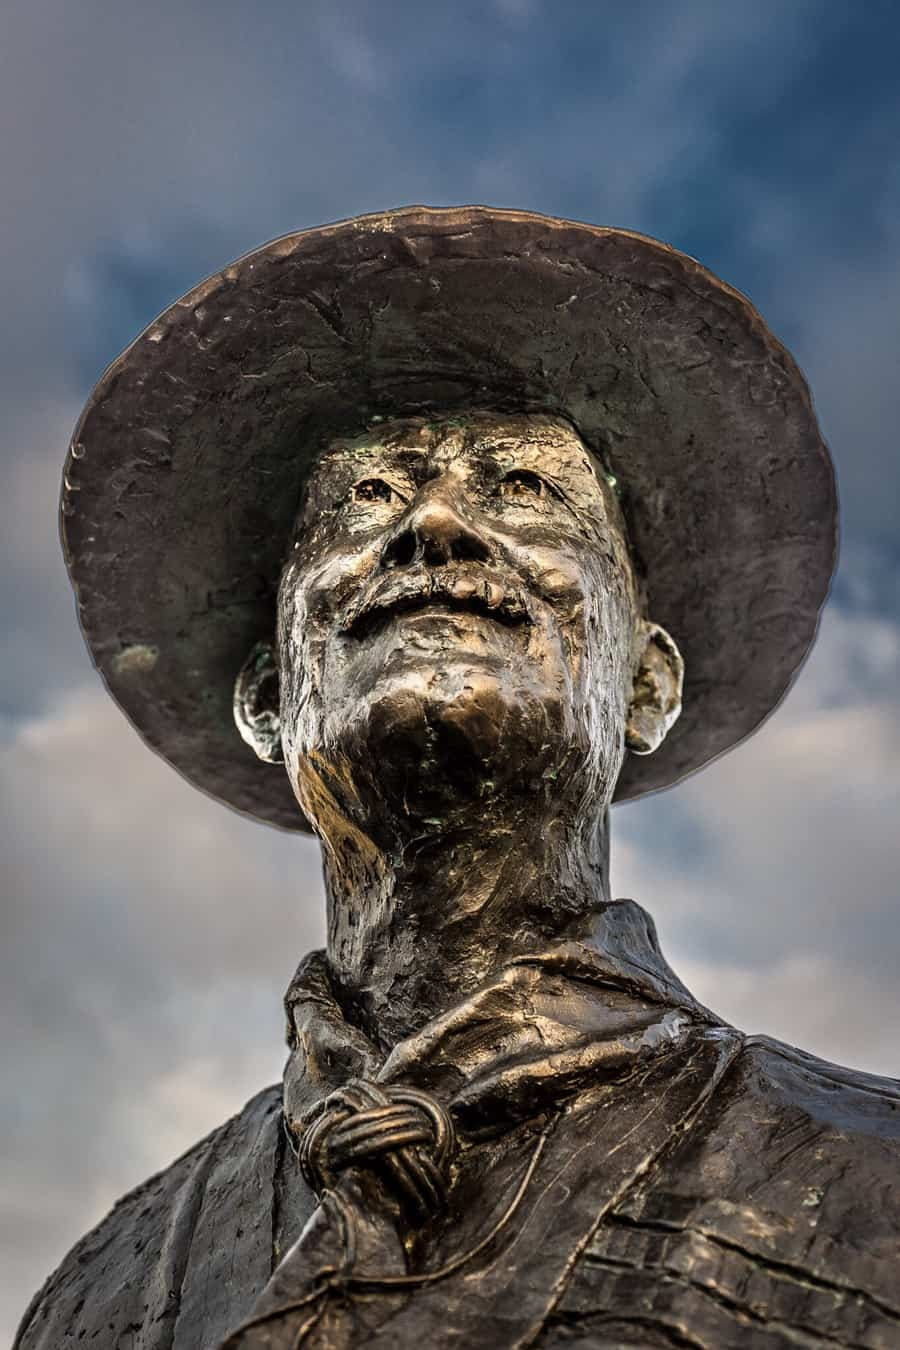 Photograph of the Lord Baden Powell Statue, Poole Quay, Dorset